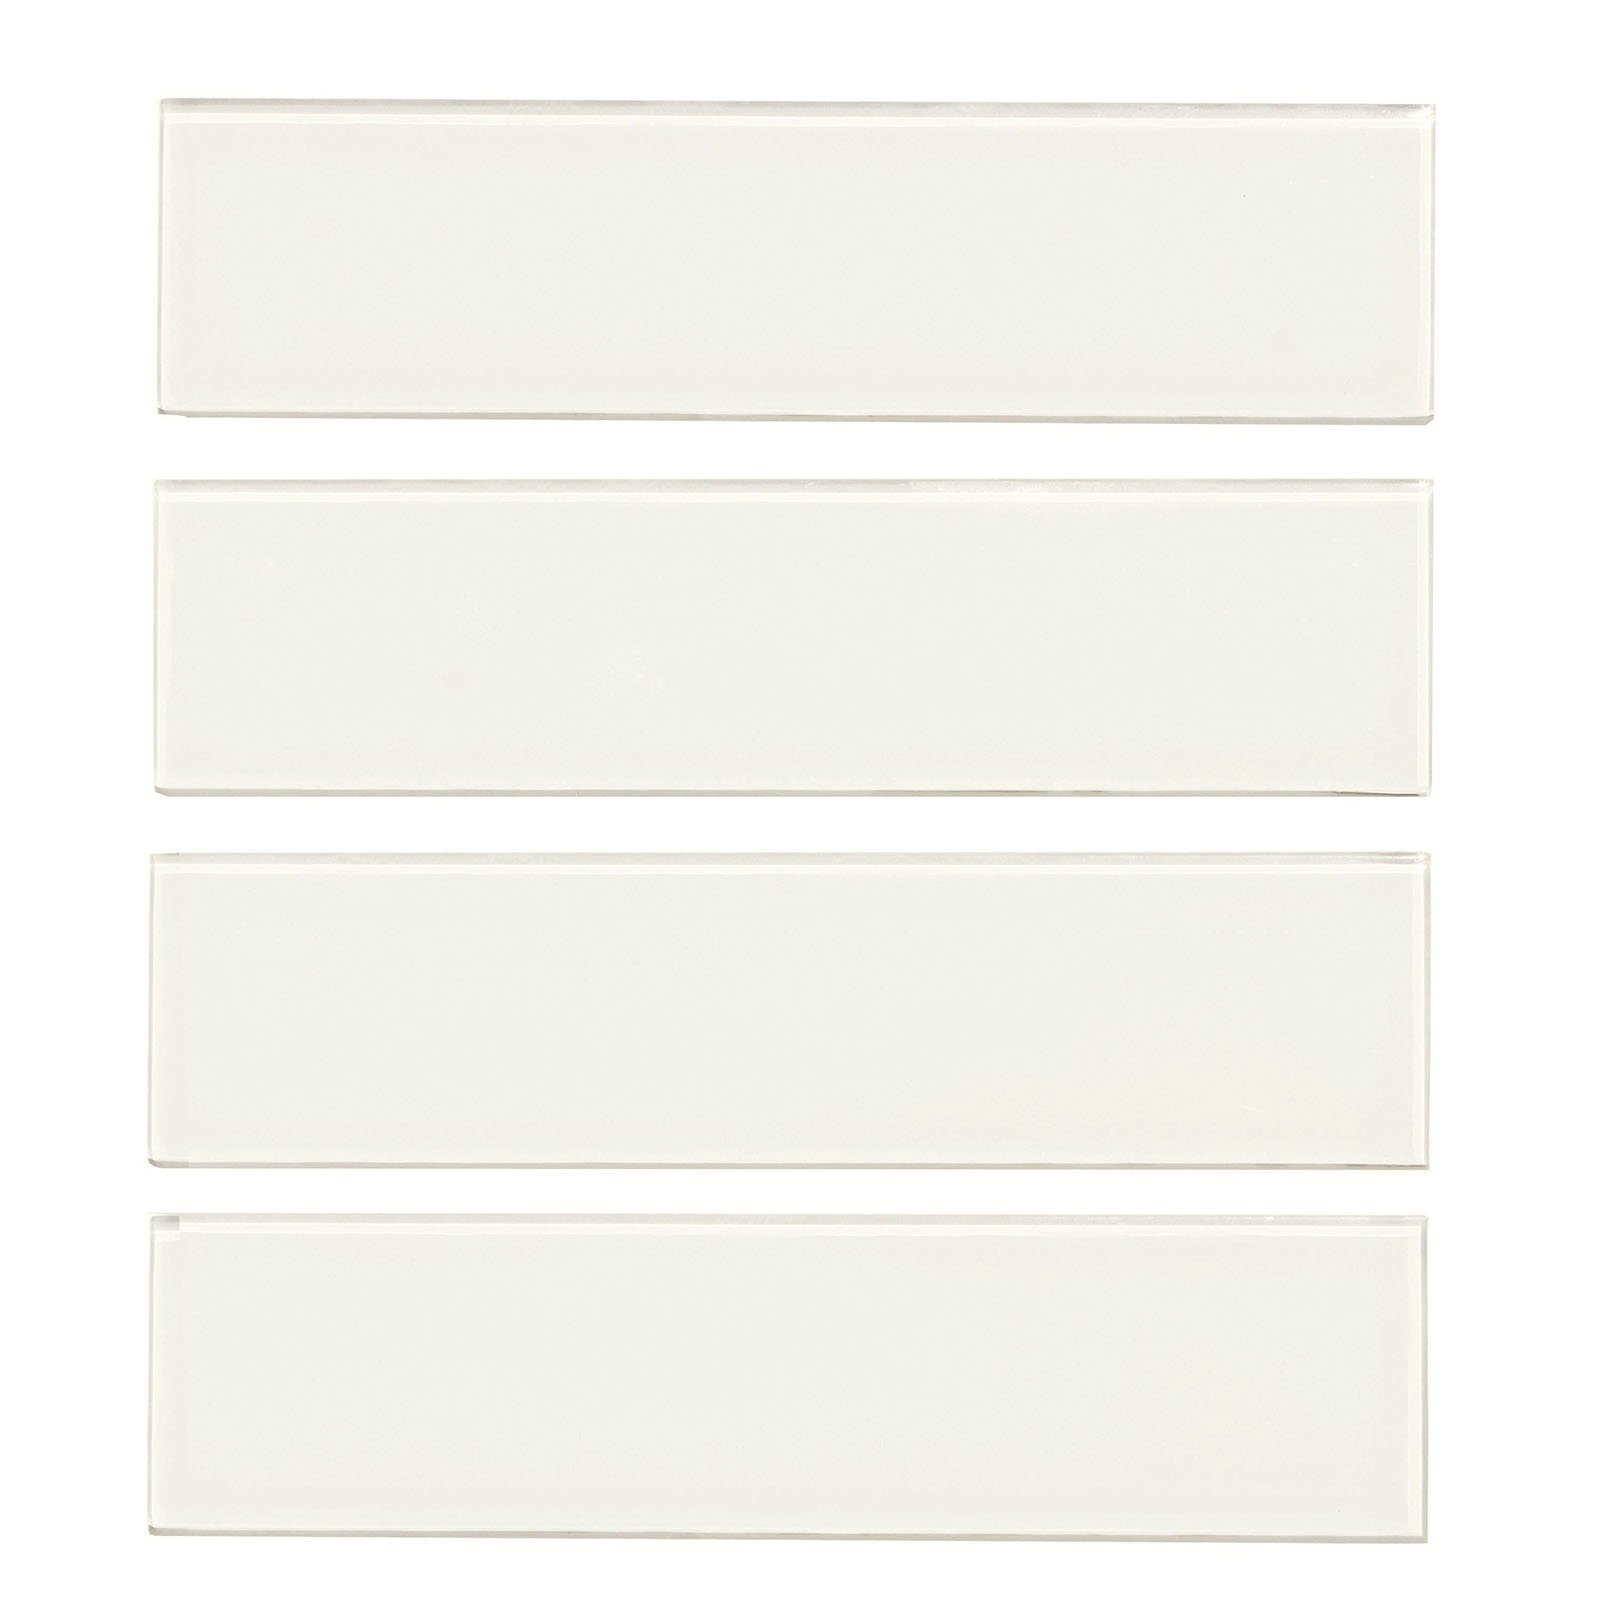 Glass Subway Tile,Oracle Collection, GTSU 001 - Super White, 3''X12'', 4 Pieces per SQFT (Box of 5 SQFT) by Mosaic Warehouse